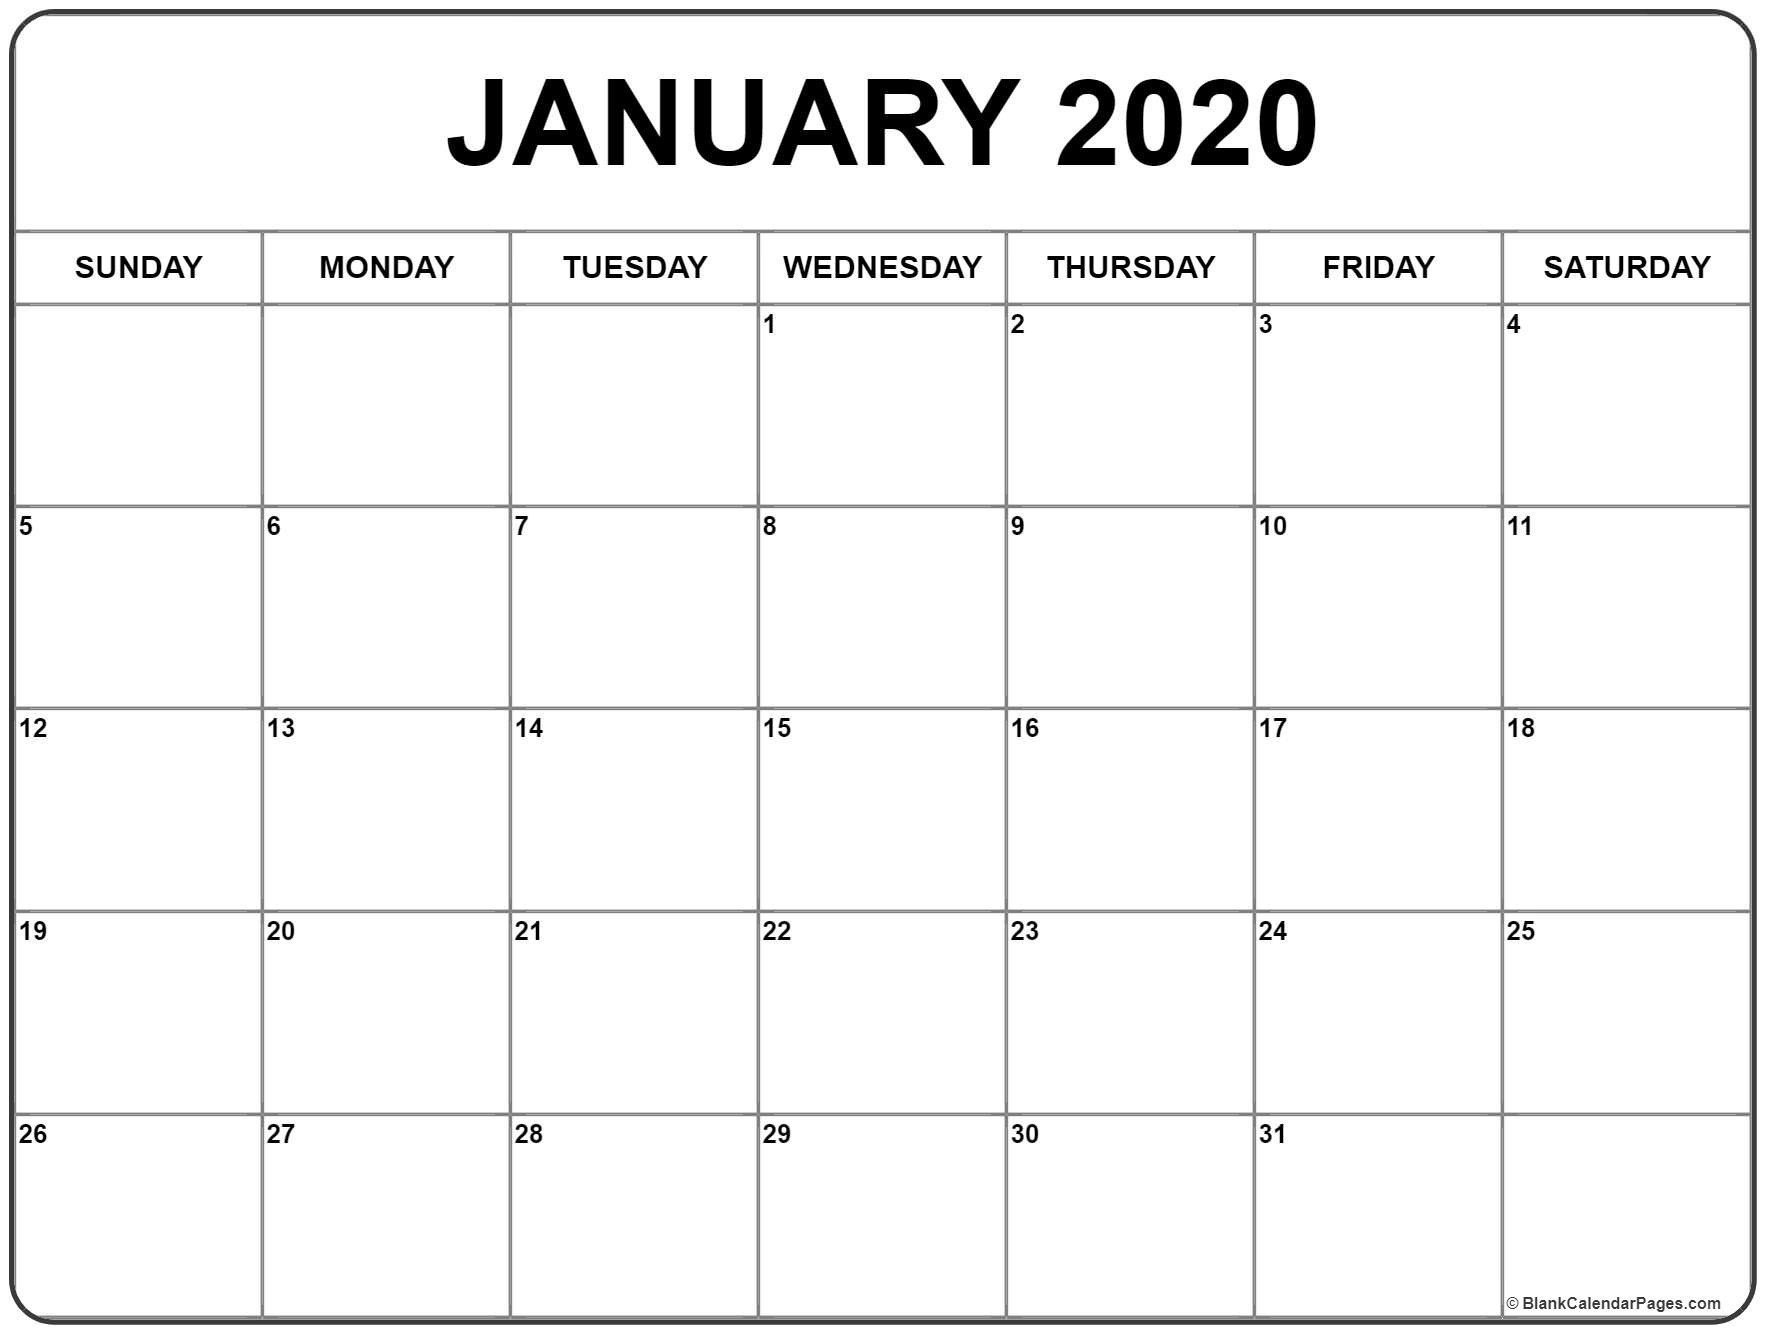 Creative Calendar Ideas » Page 25 Of 124 » Best Ideas For-January 2020 Calendar In Kannada